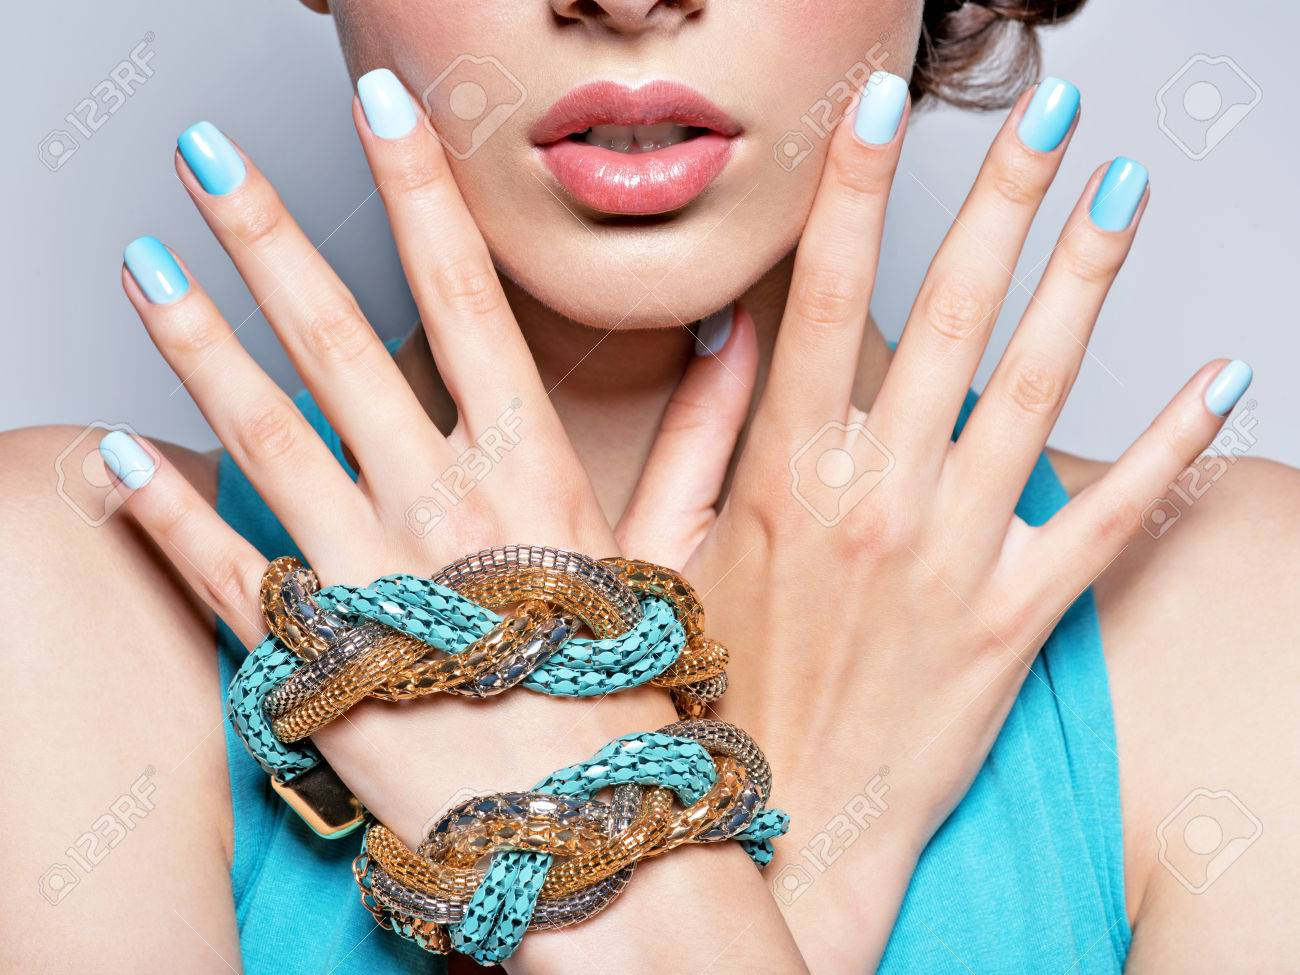 woman hands nails manicure fashion blue jewelry. Female hands with blue fingernails Banque d'images - 54077856